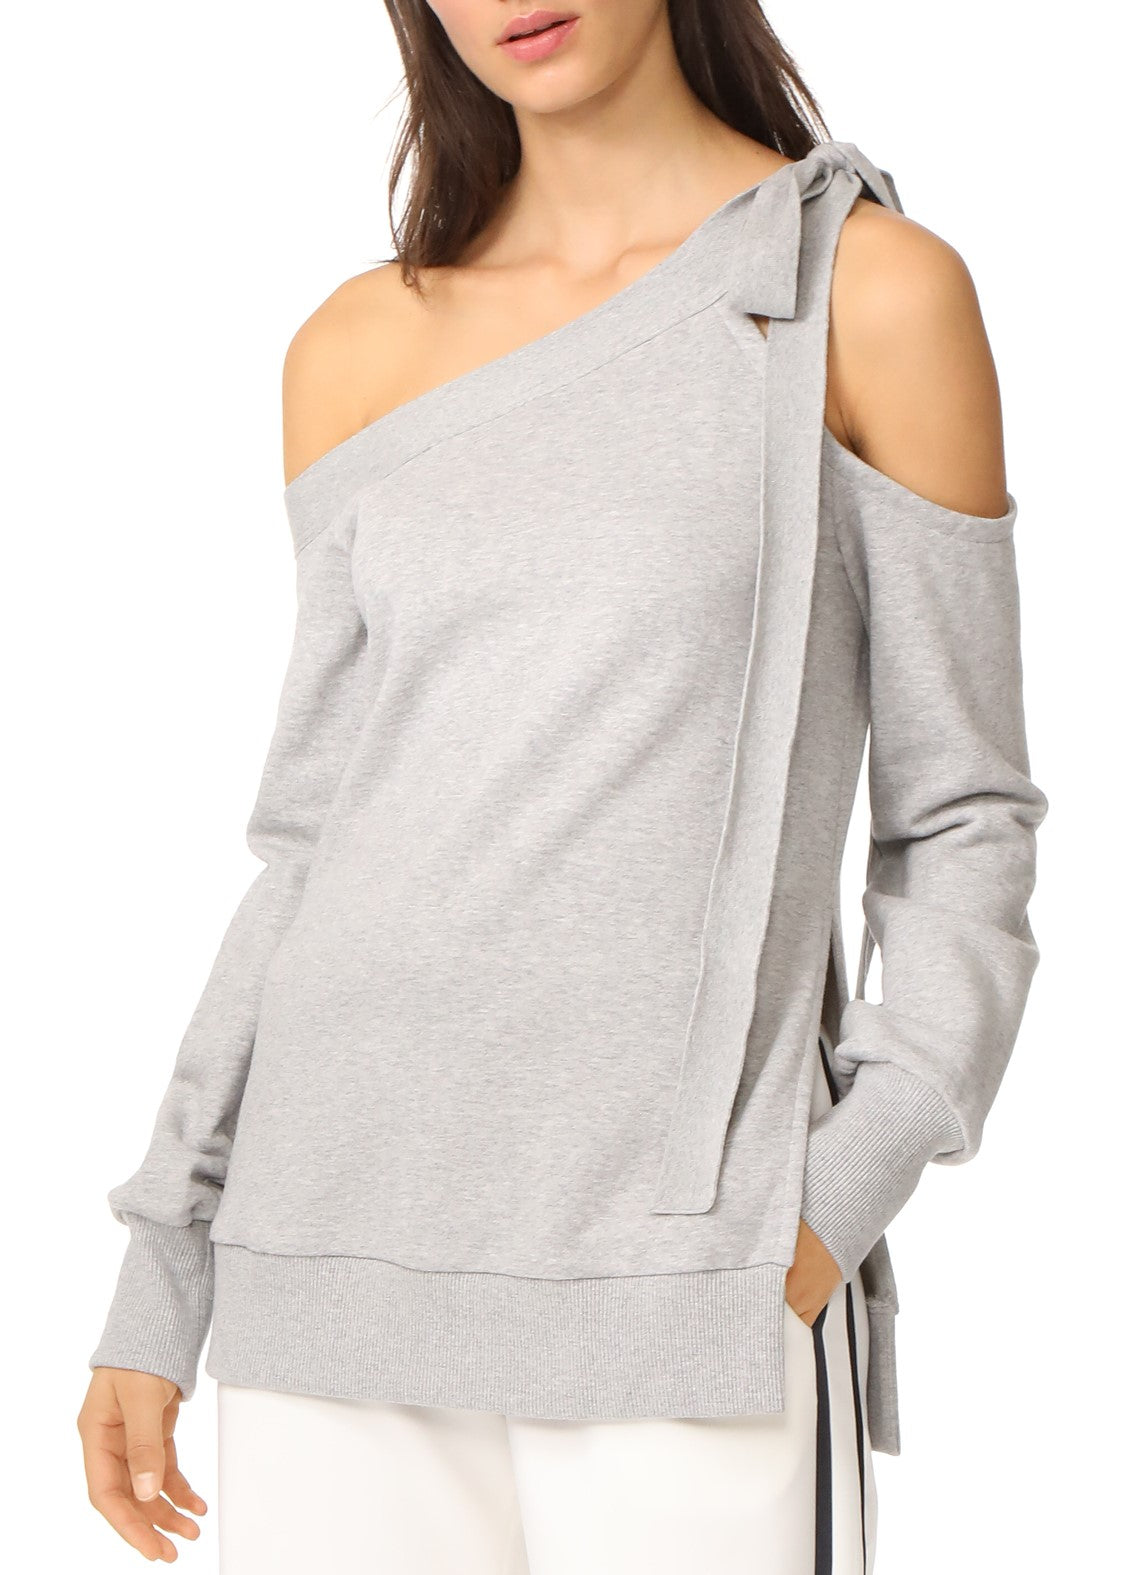 Goen.J open shoulder sweatshirt grey